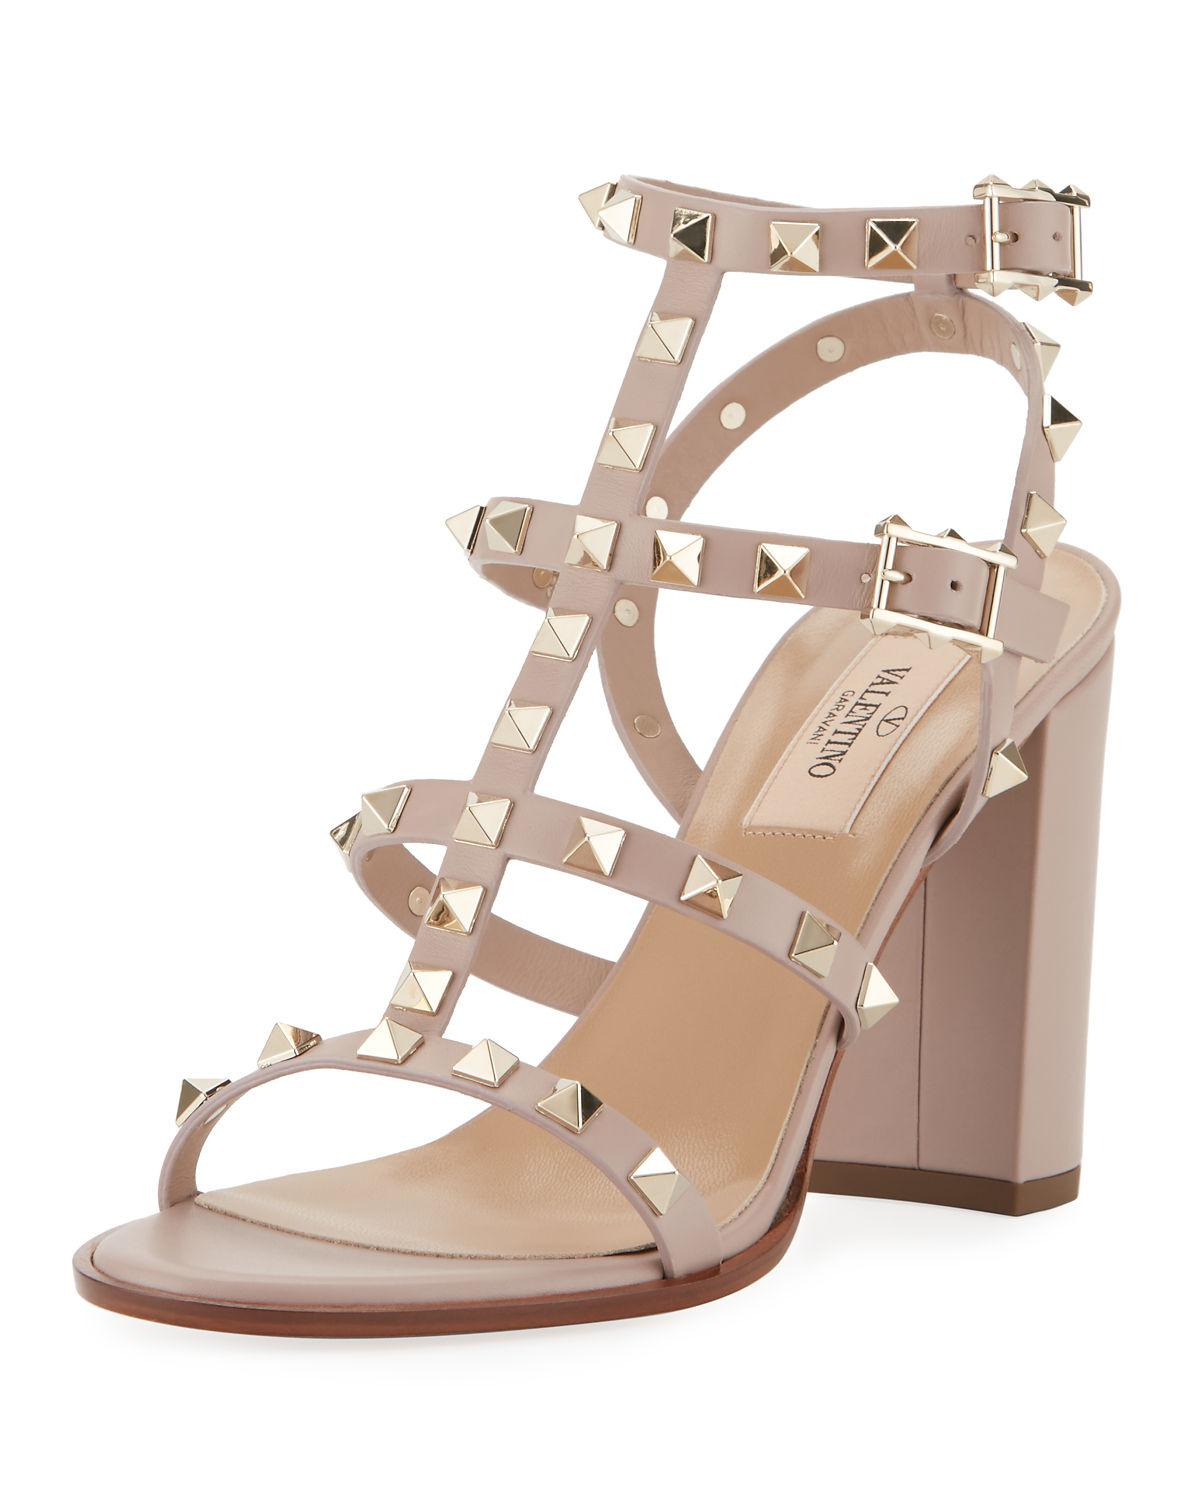 a3419936b56 Lyst - Valentino Rockstud Leather 90mm City Sandal